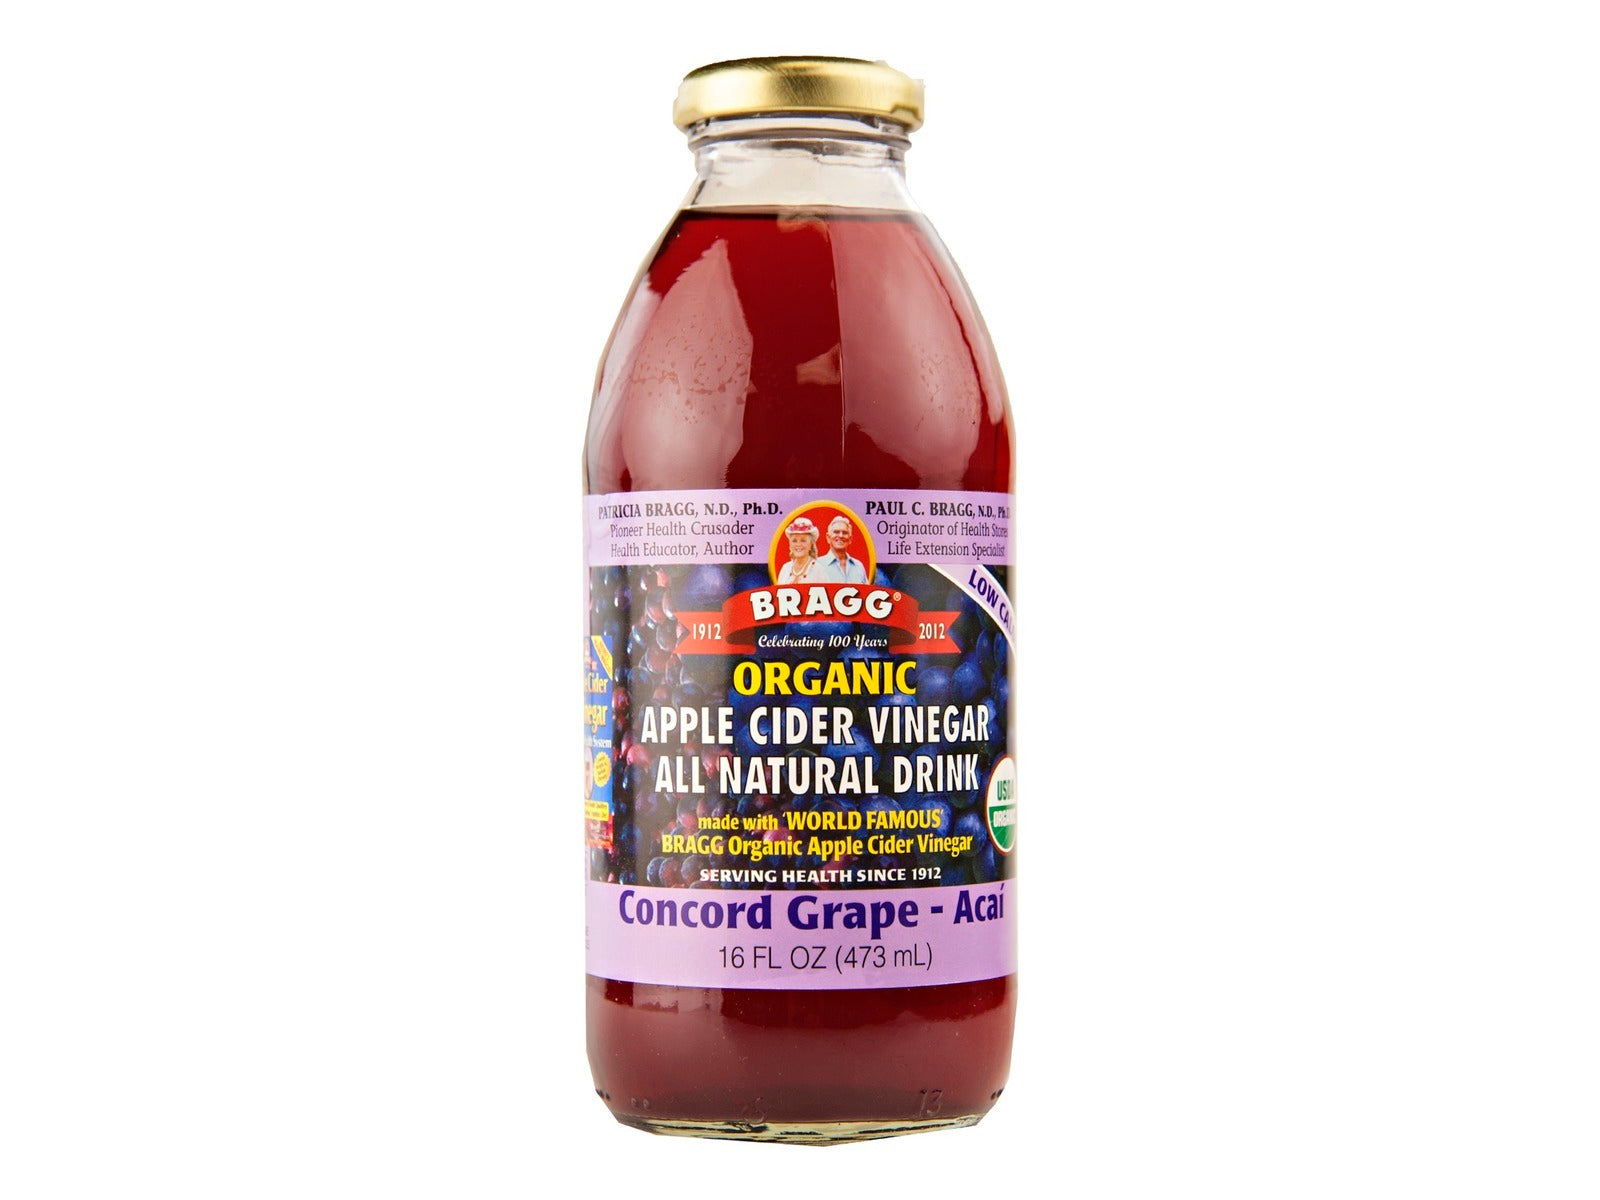 Bragg's Apple Cider Vinegar Healthy Energy Drink (Concord Grape - Acai) 473ml